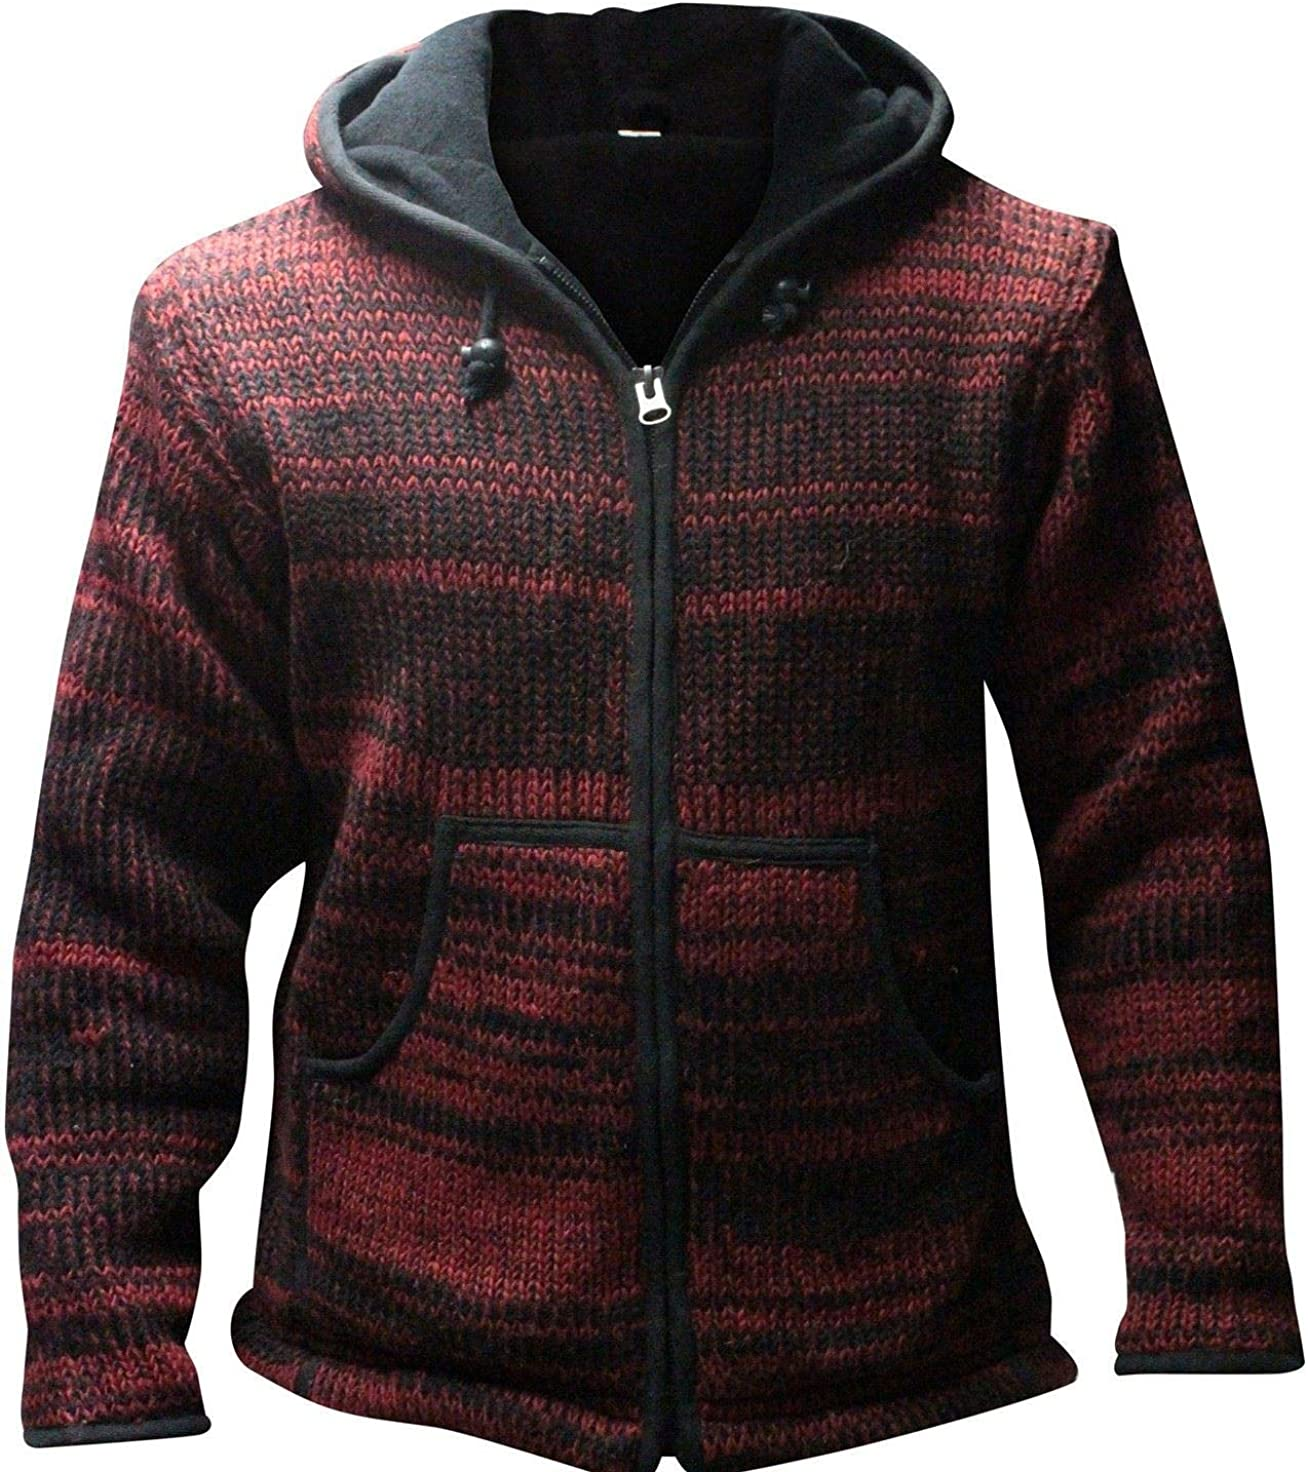 Shopoholic Fashion Mens Tie dye Woolen Hippie Jacket